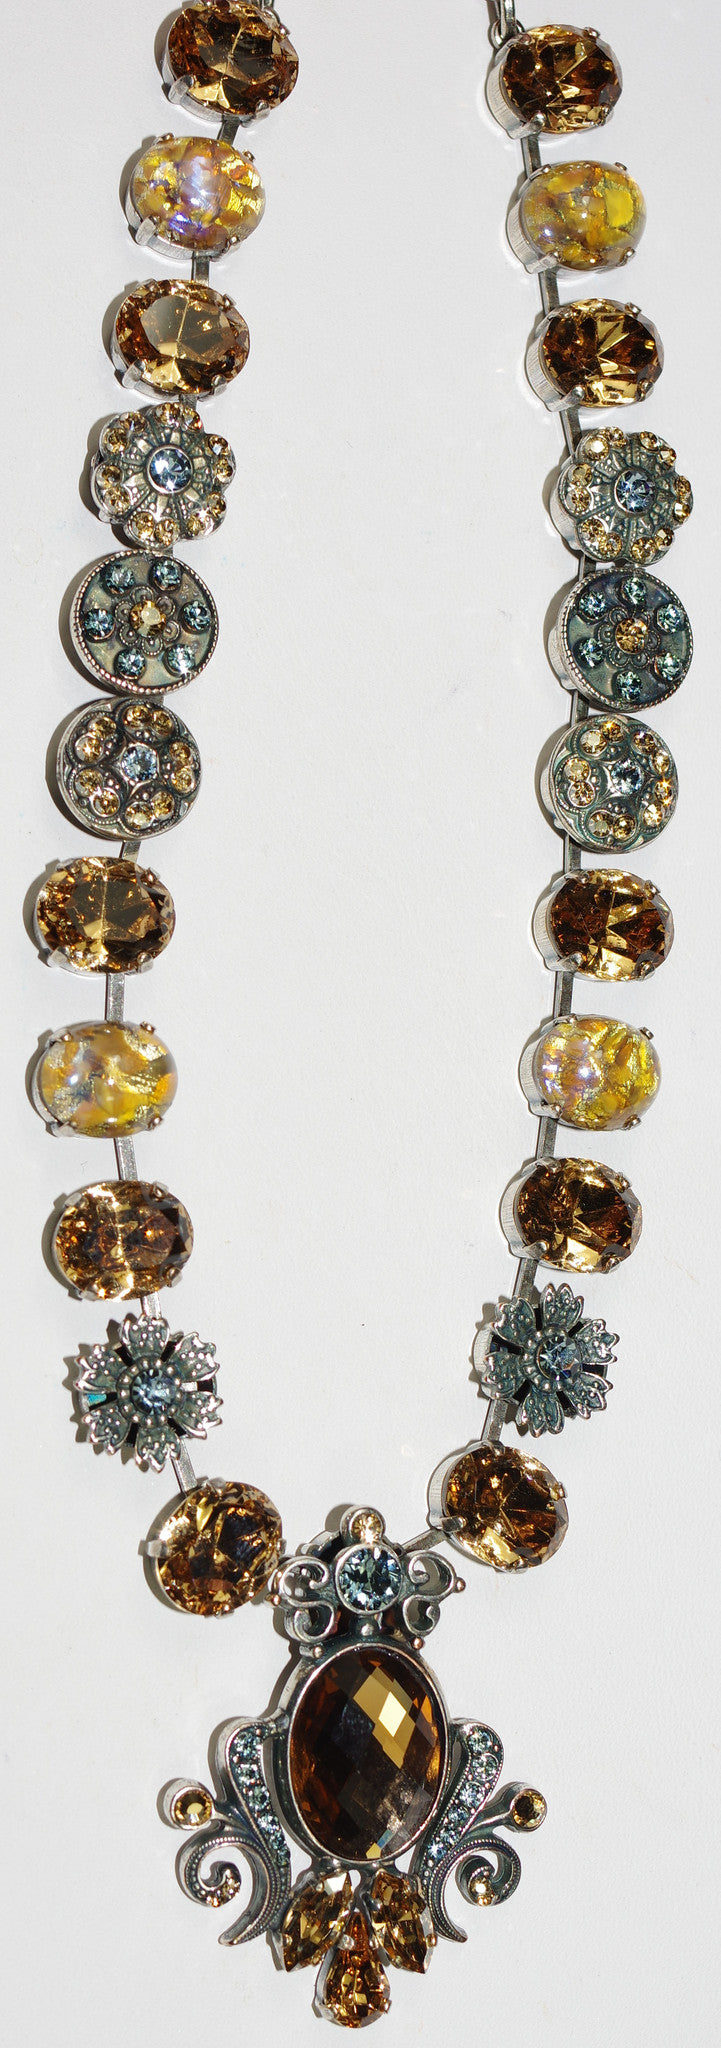 "MARIANA NECKLACE MOON DROPS: amber, blue stones in silver setting, 18"" adjustable chain"